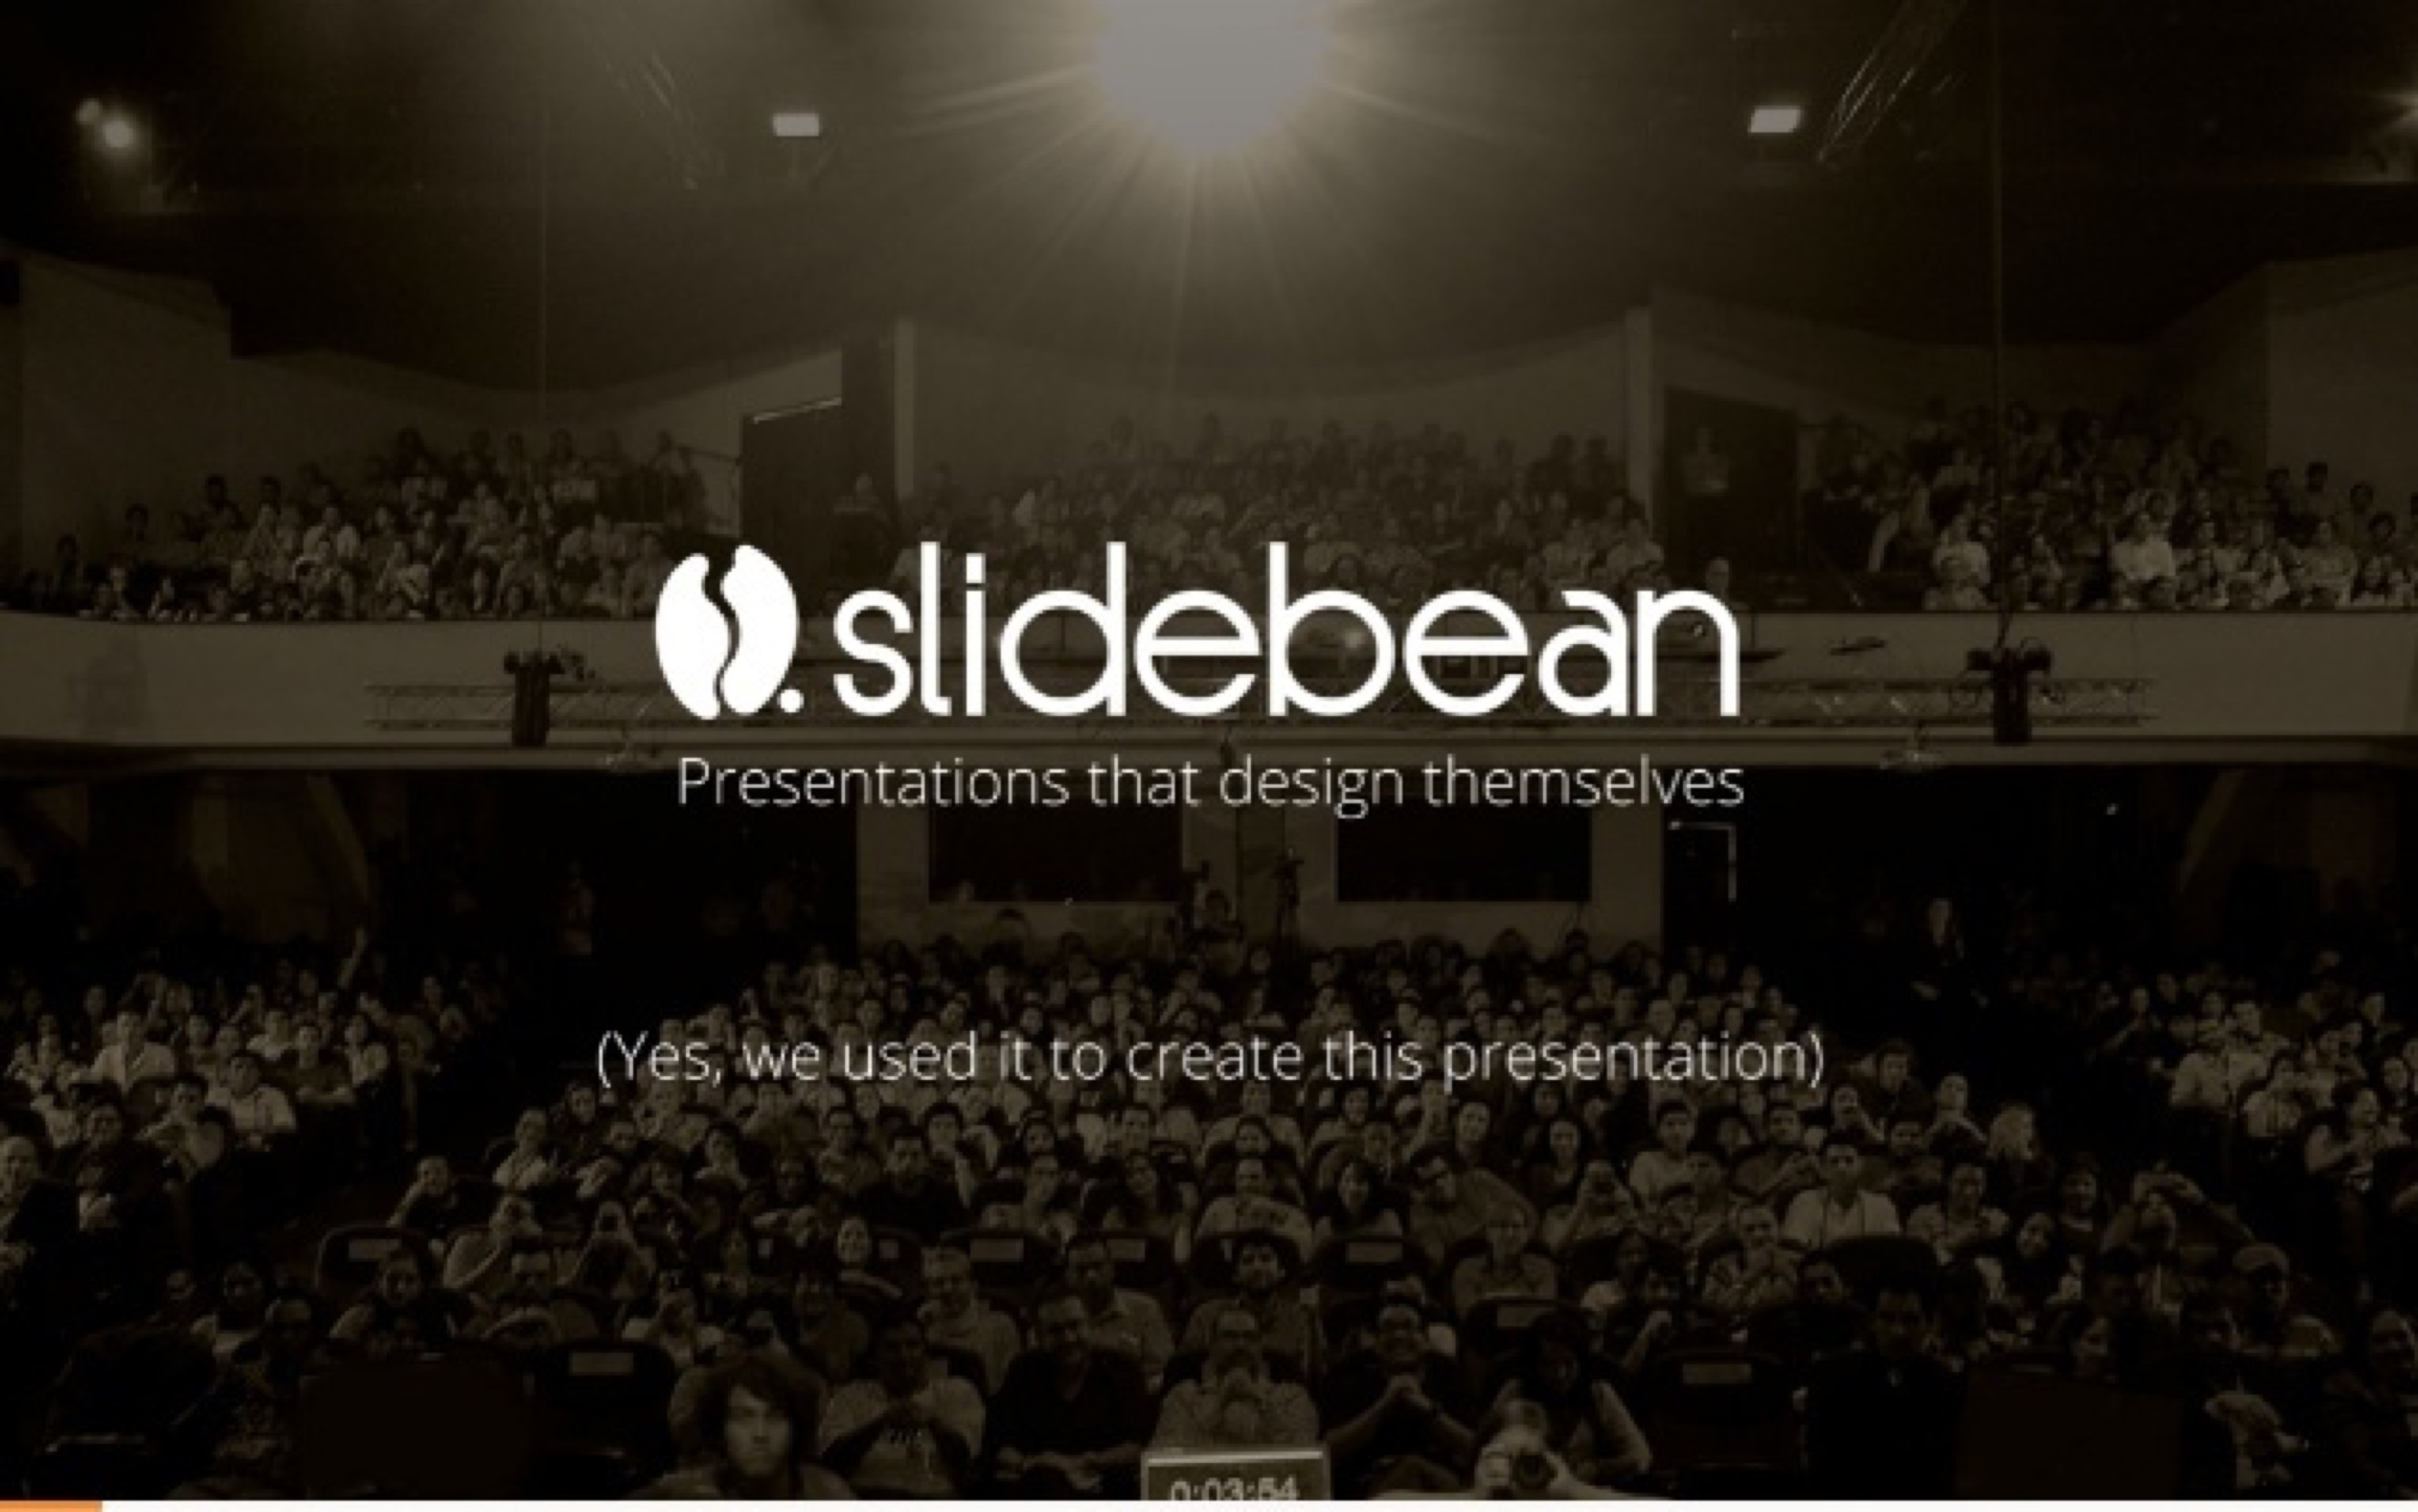 slidebean-pitch-deck-001